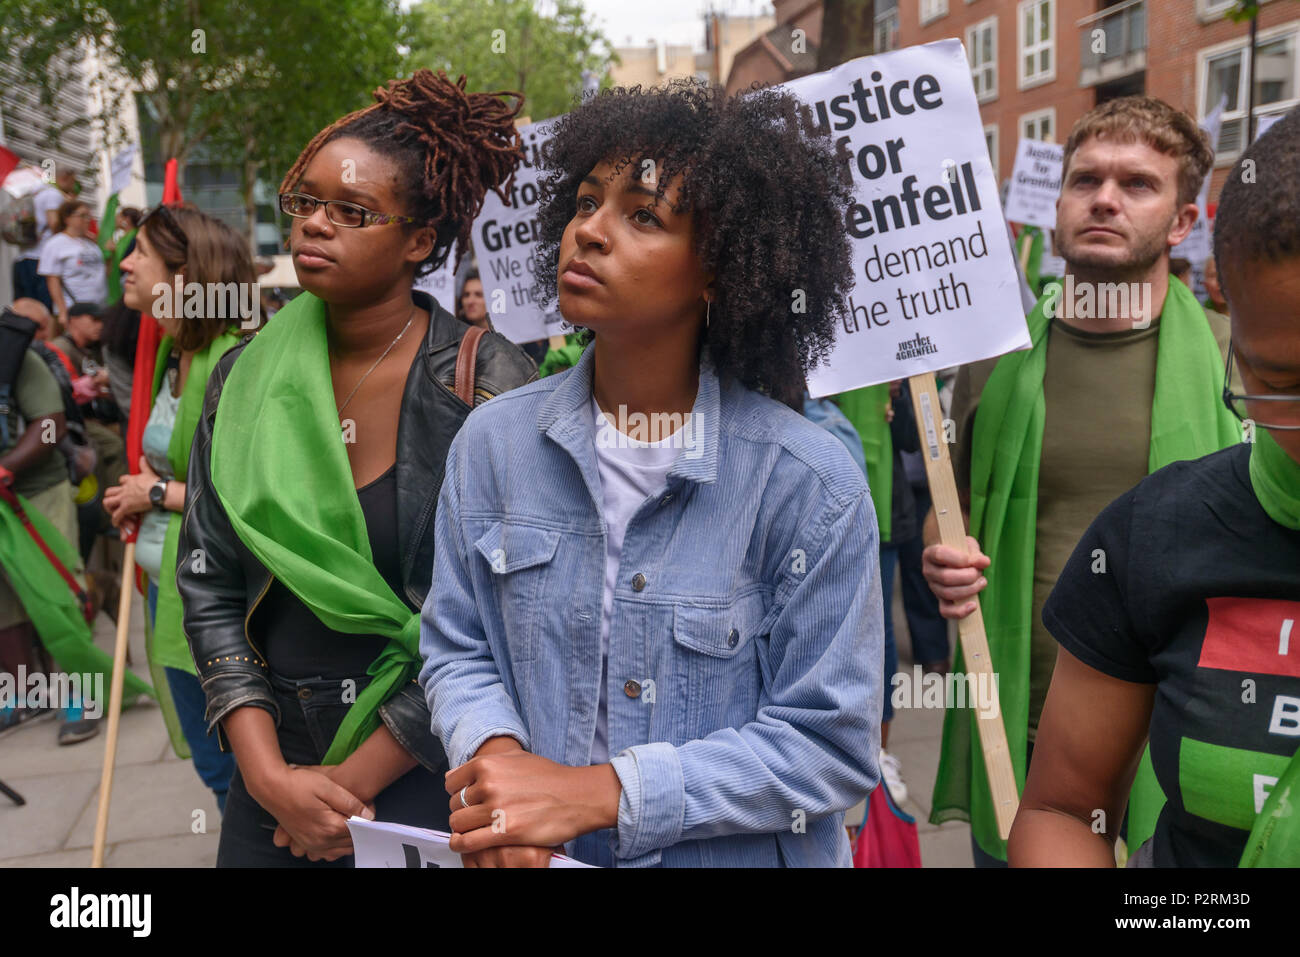 London, UK. 16th June 2018. A large crowd at the Home Office shows solidarity with the 72 killed and the survivors of the Grenfell fire a year ago at a protest organised by Justice4Grenfell and the FBU (Fire Brigades Union.) After some speeches they marched to the Home Office for a brief protest before returning to Downing St for more speeches. mmodation. 300 tower blo Credit: Peter Marshall/Alamy Live News - Stock Image